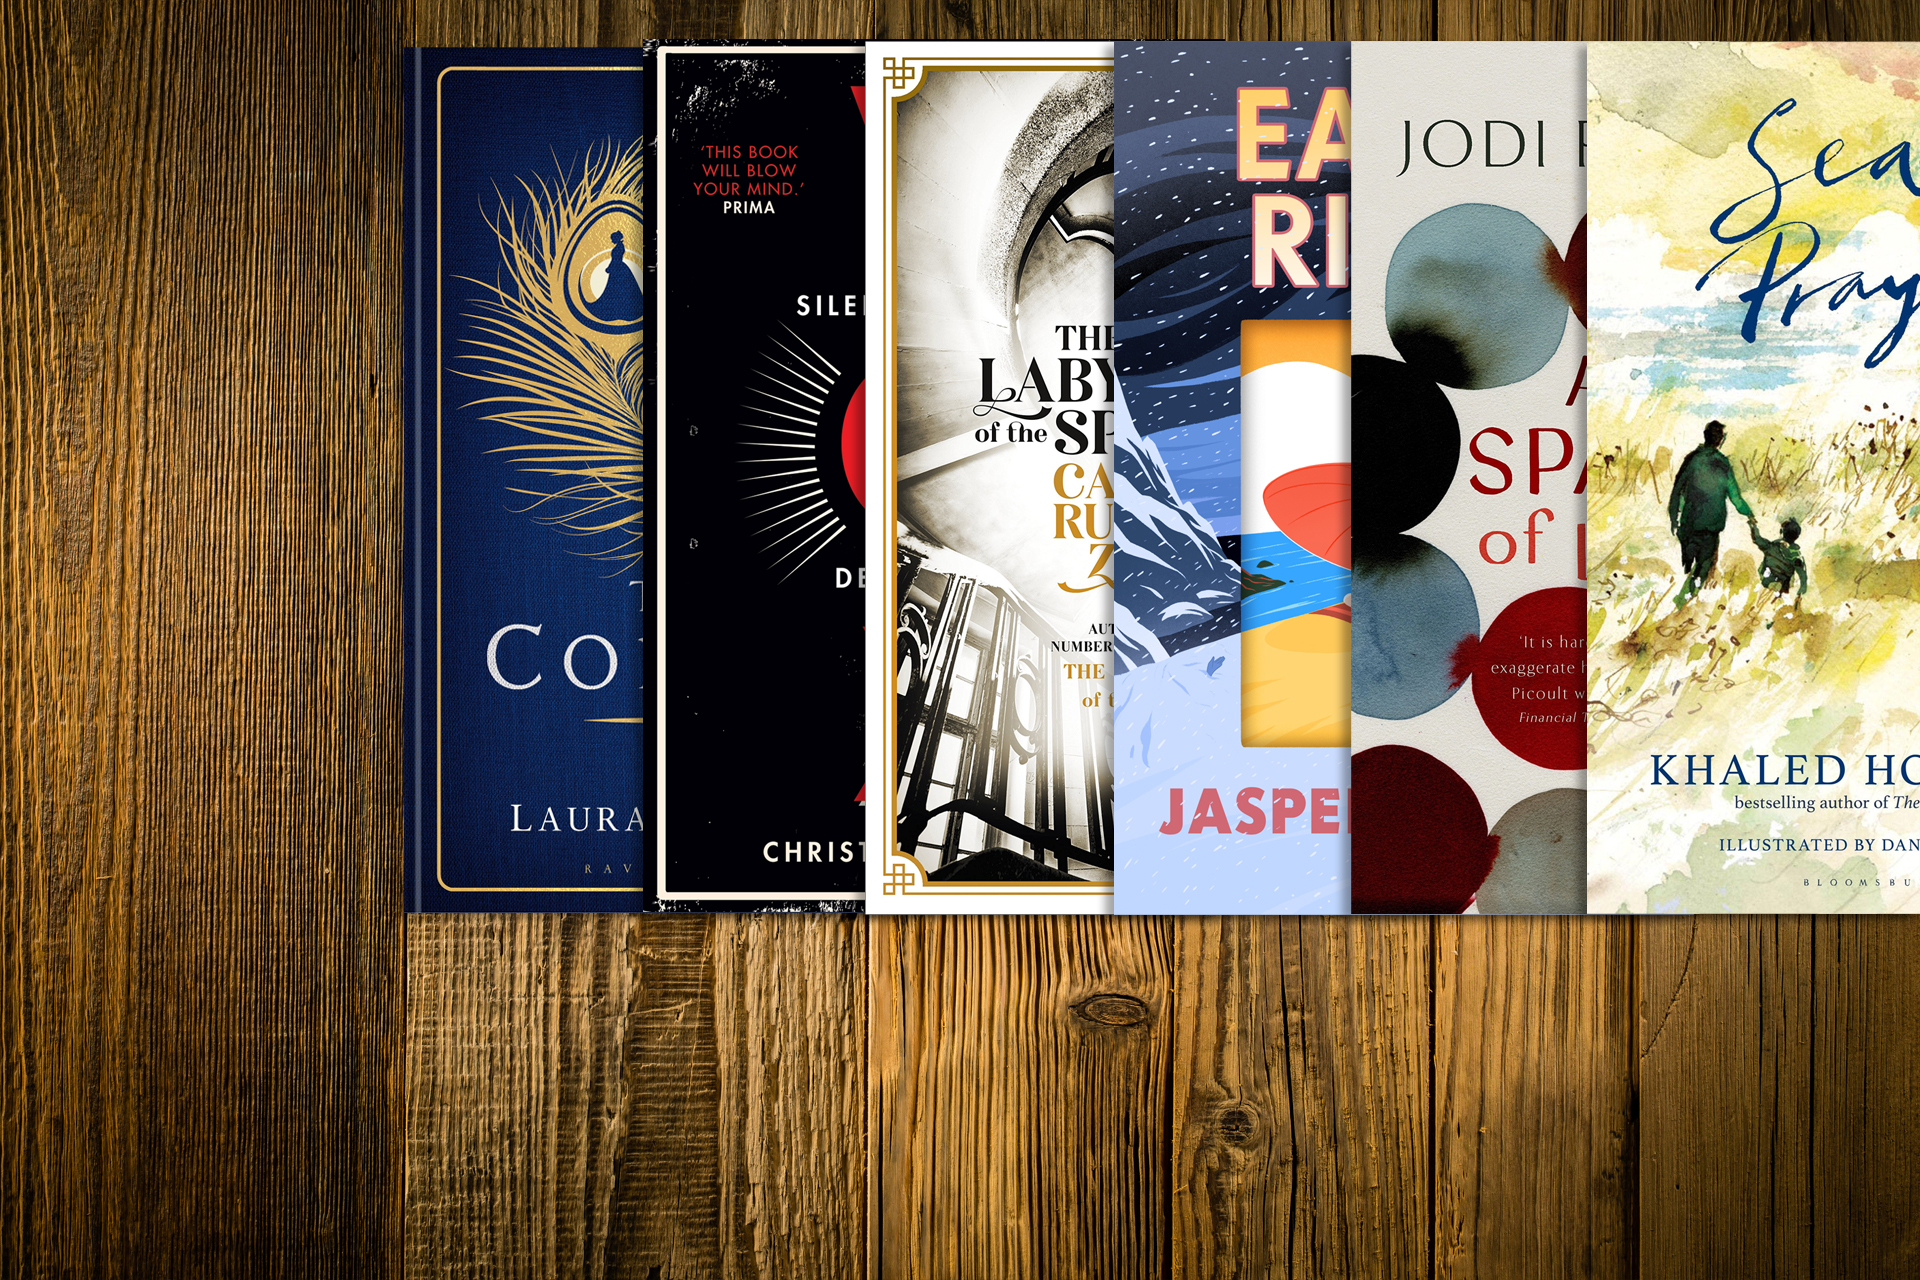 We take you on a journey throughthe newest must-reads.